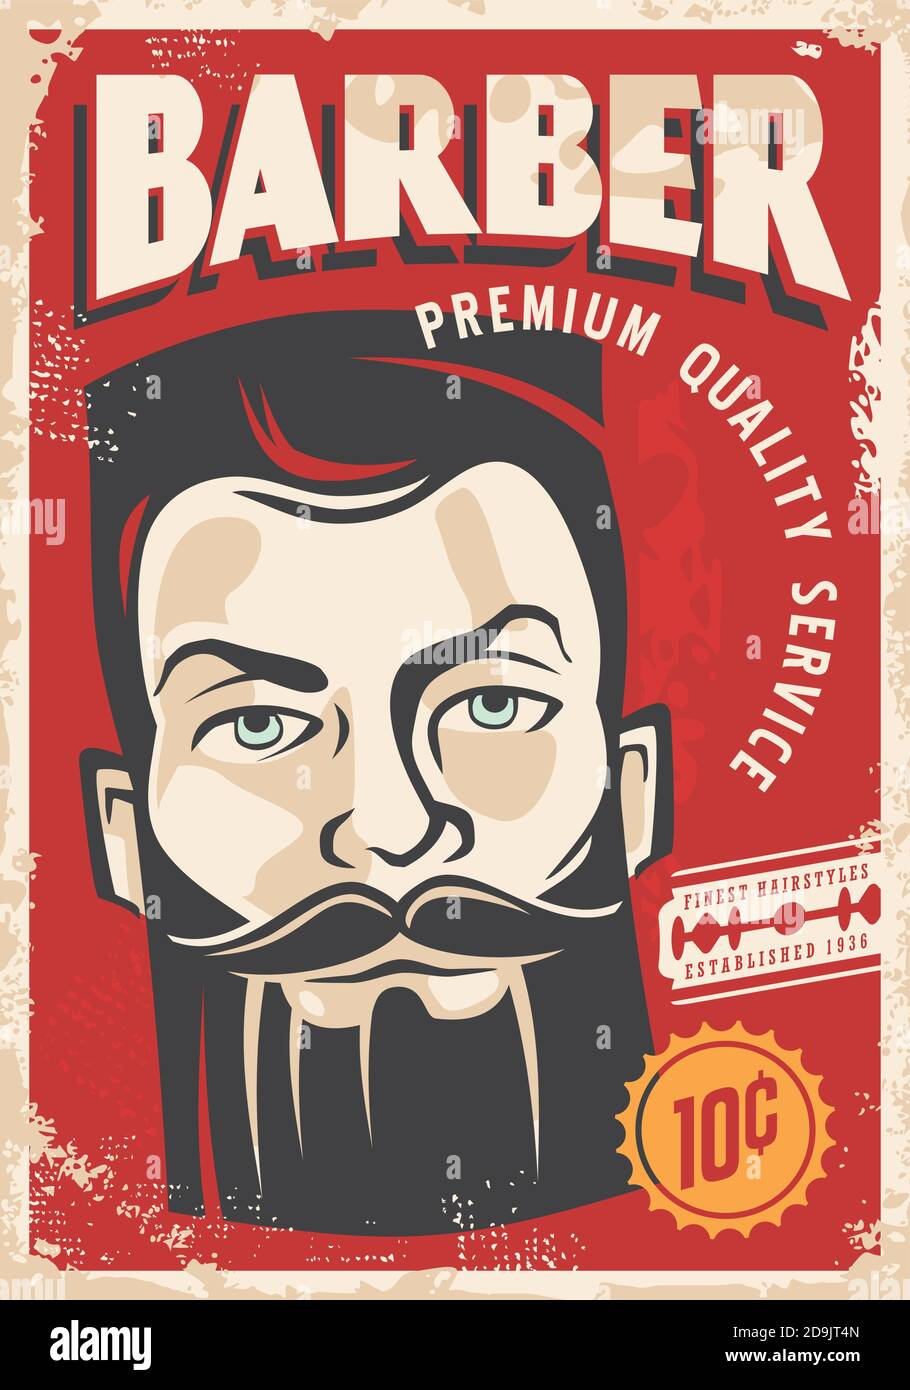 https www alamy com barber shop retro poster design with bearded man portrait on old paper texture background haircut and shaving service vector image image384574085 html